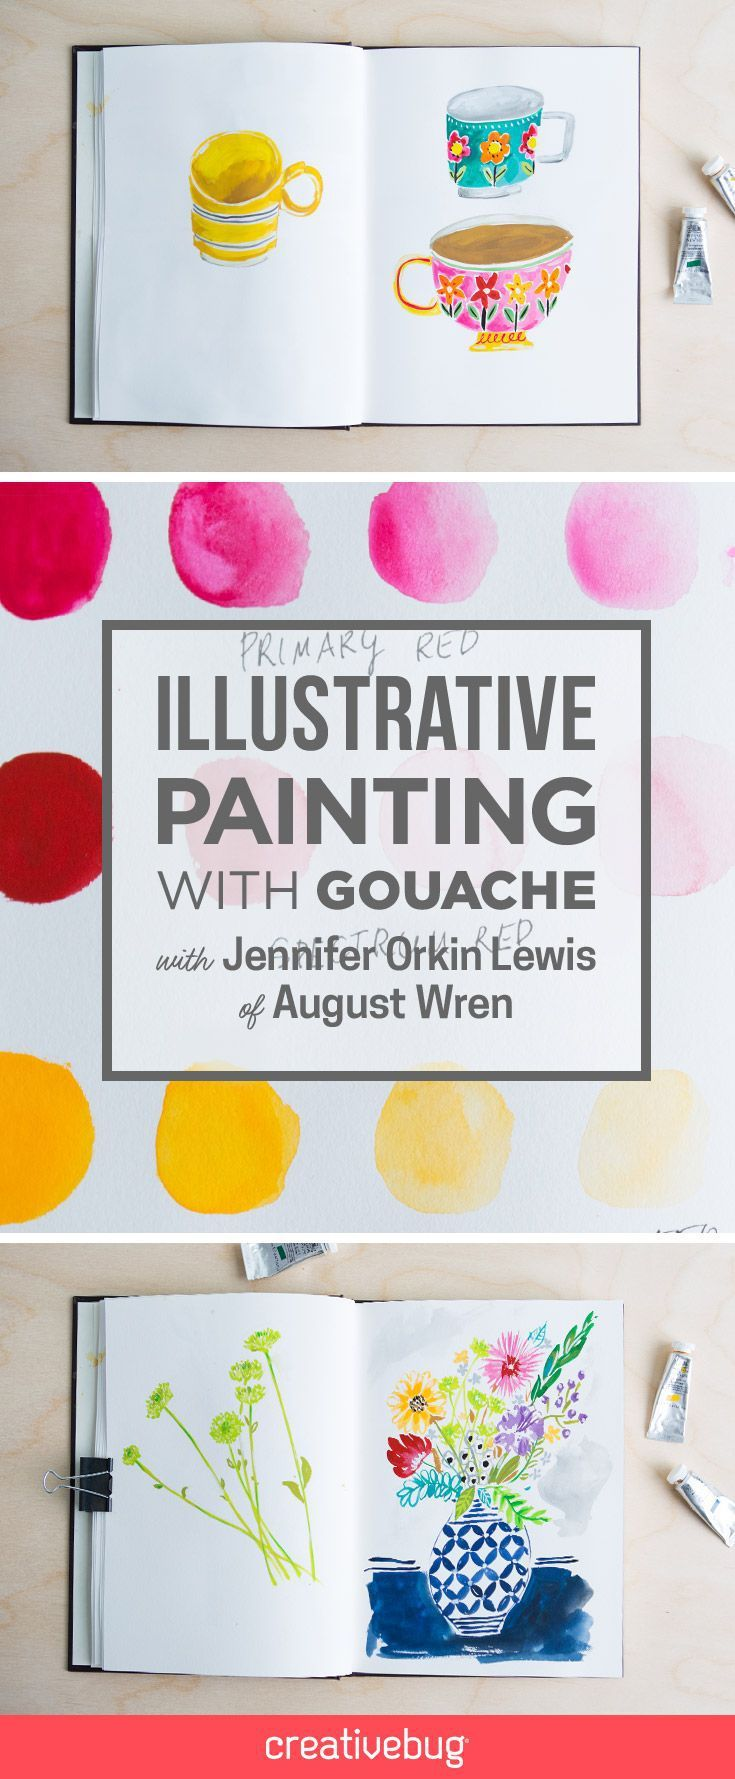 """Before you start painting illustrations with gouache, it's important to understand how to work with the medium. Jennifer begins by showing you how to set up your palette and mix custom colors. She also teaches how to work """"thick"""" or """"thin"""" with dry and wet gouache in order to achieve different effects. Once you've got the hang of working with gouache, Jennifer shows you how to approach painting fanciful everyday objects, like teapots and mugs. Learn how to: Work with gouache Paint from life…"""